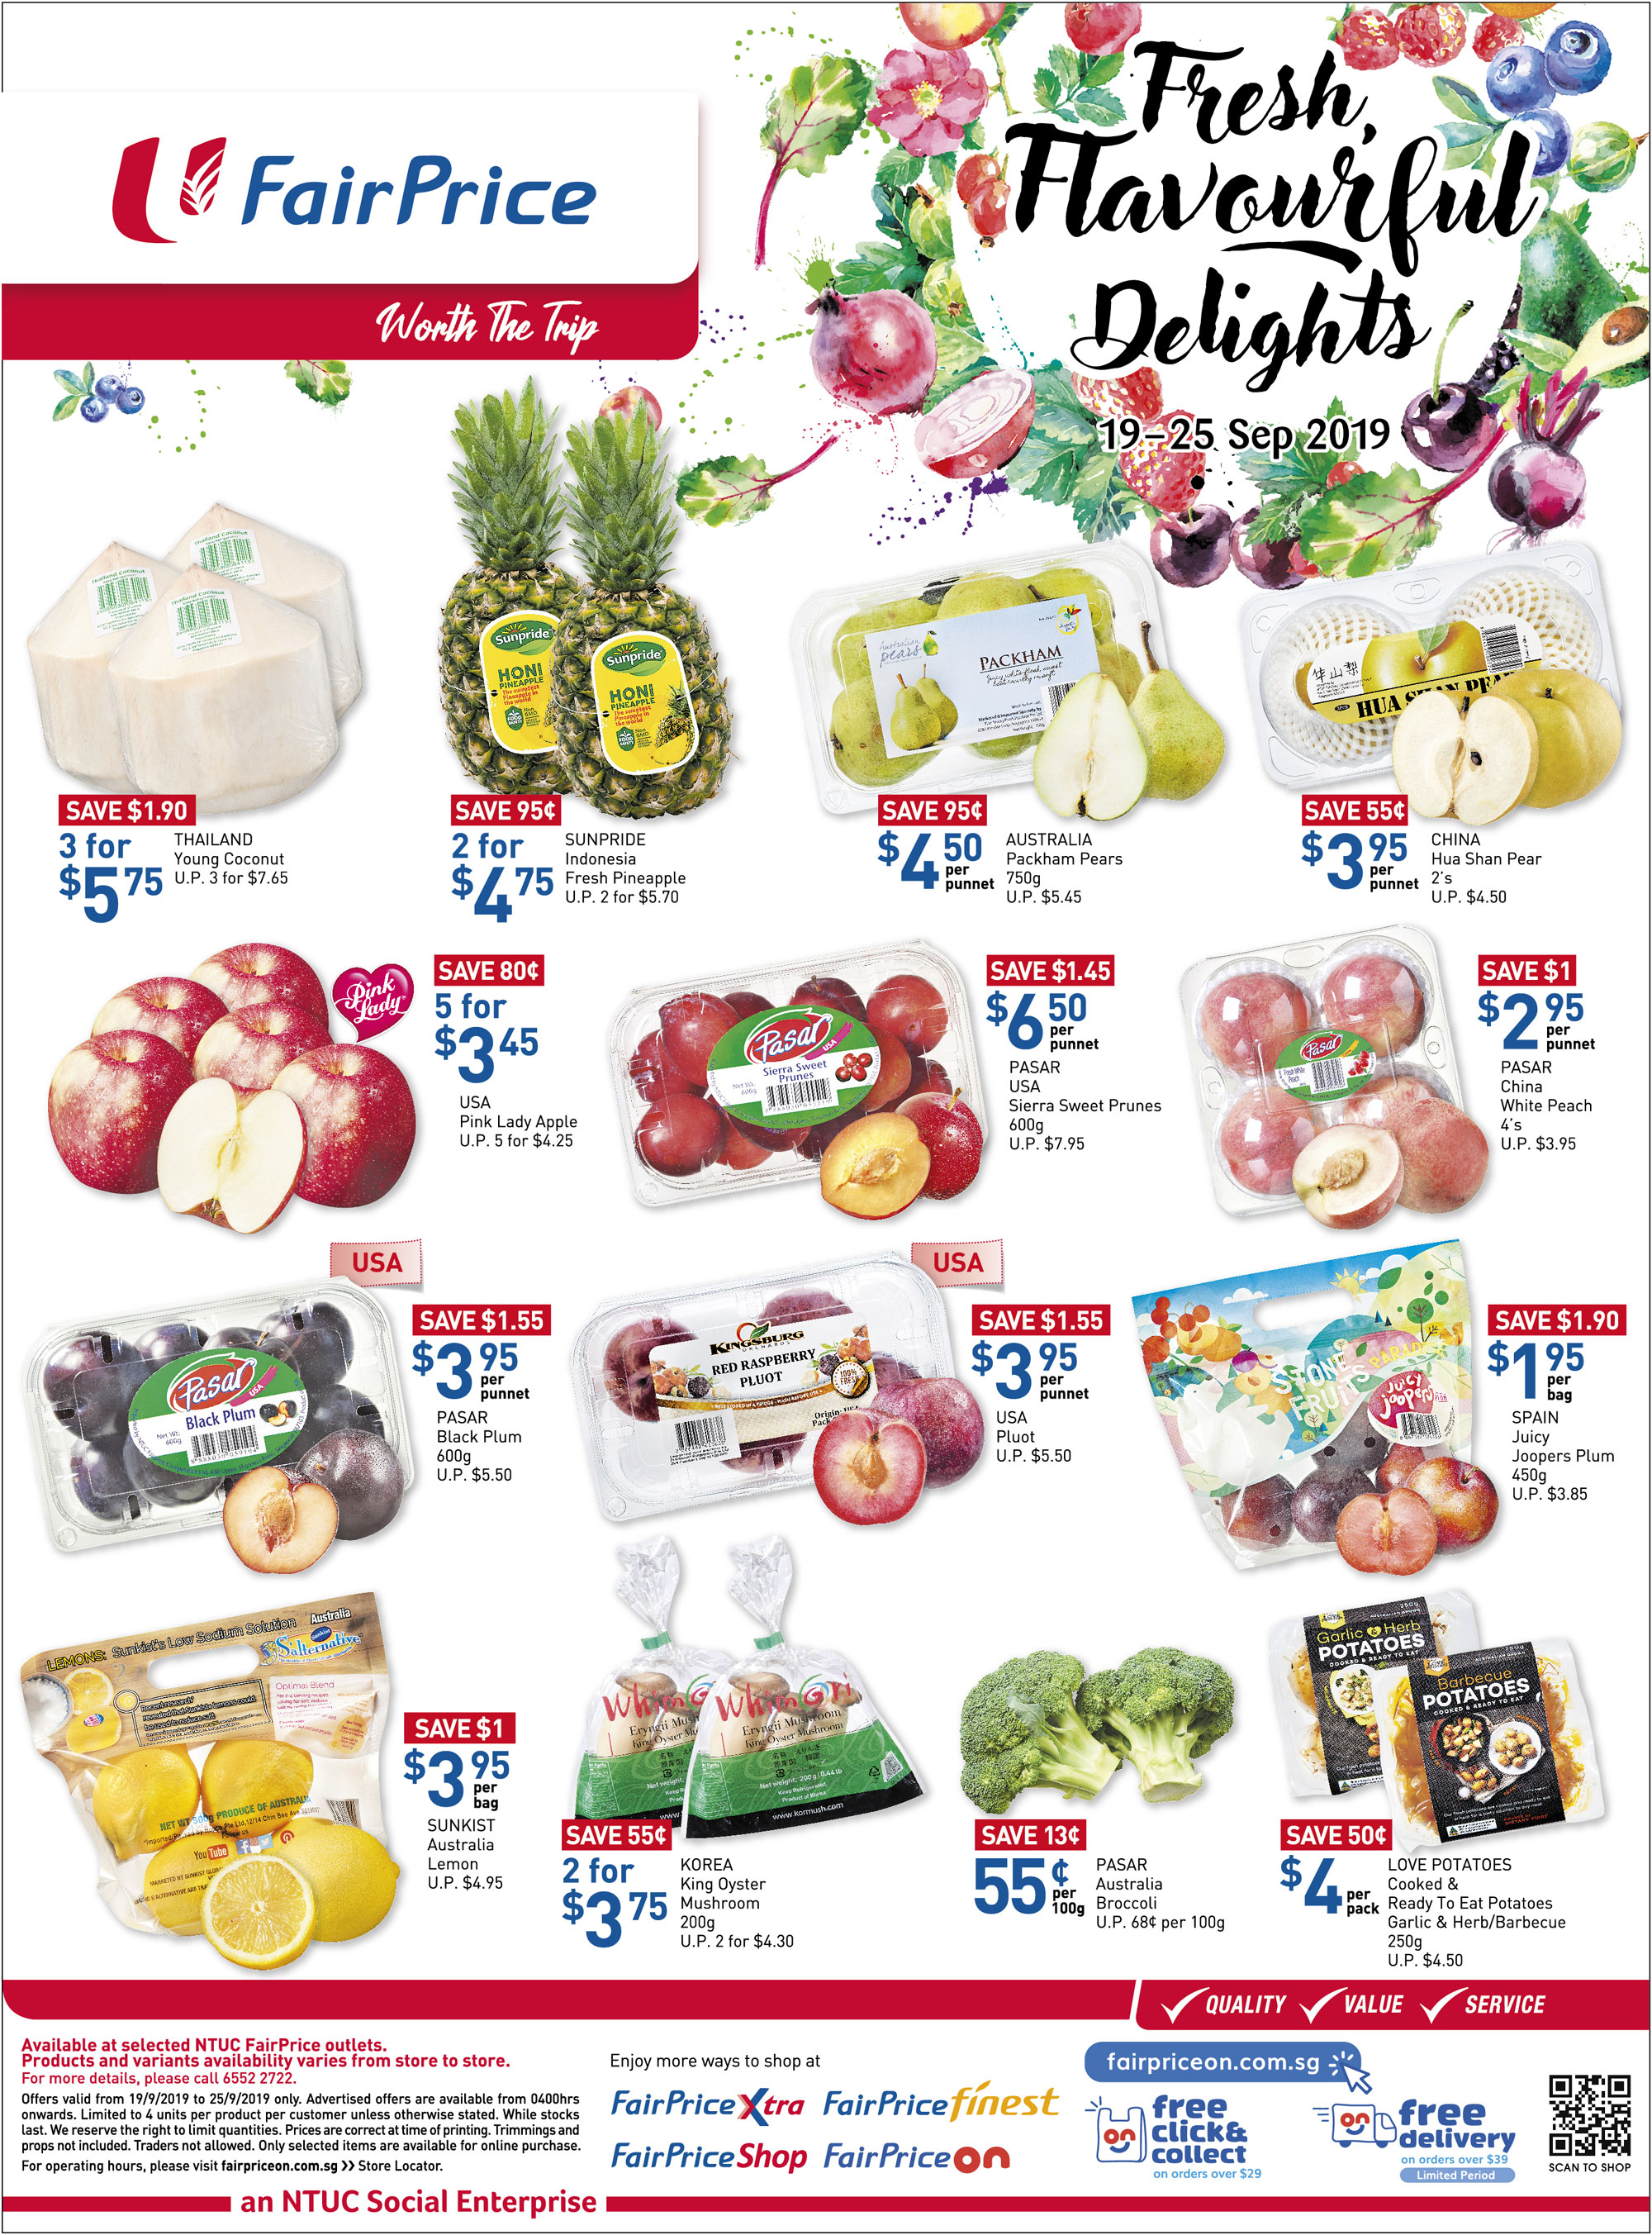 NTUC FairPrice Singapore Your Weekly Saver Promotion 19-25 Sep 2019 | Why Not Deals 4 & Promotions